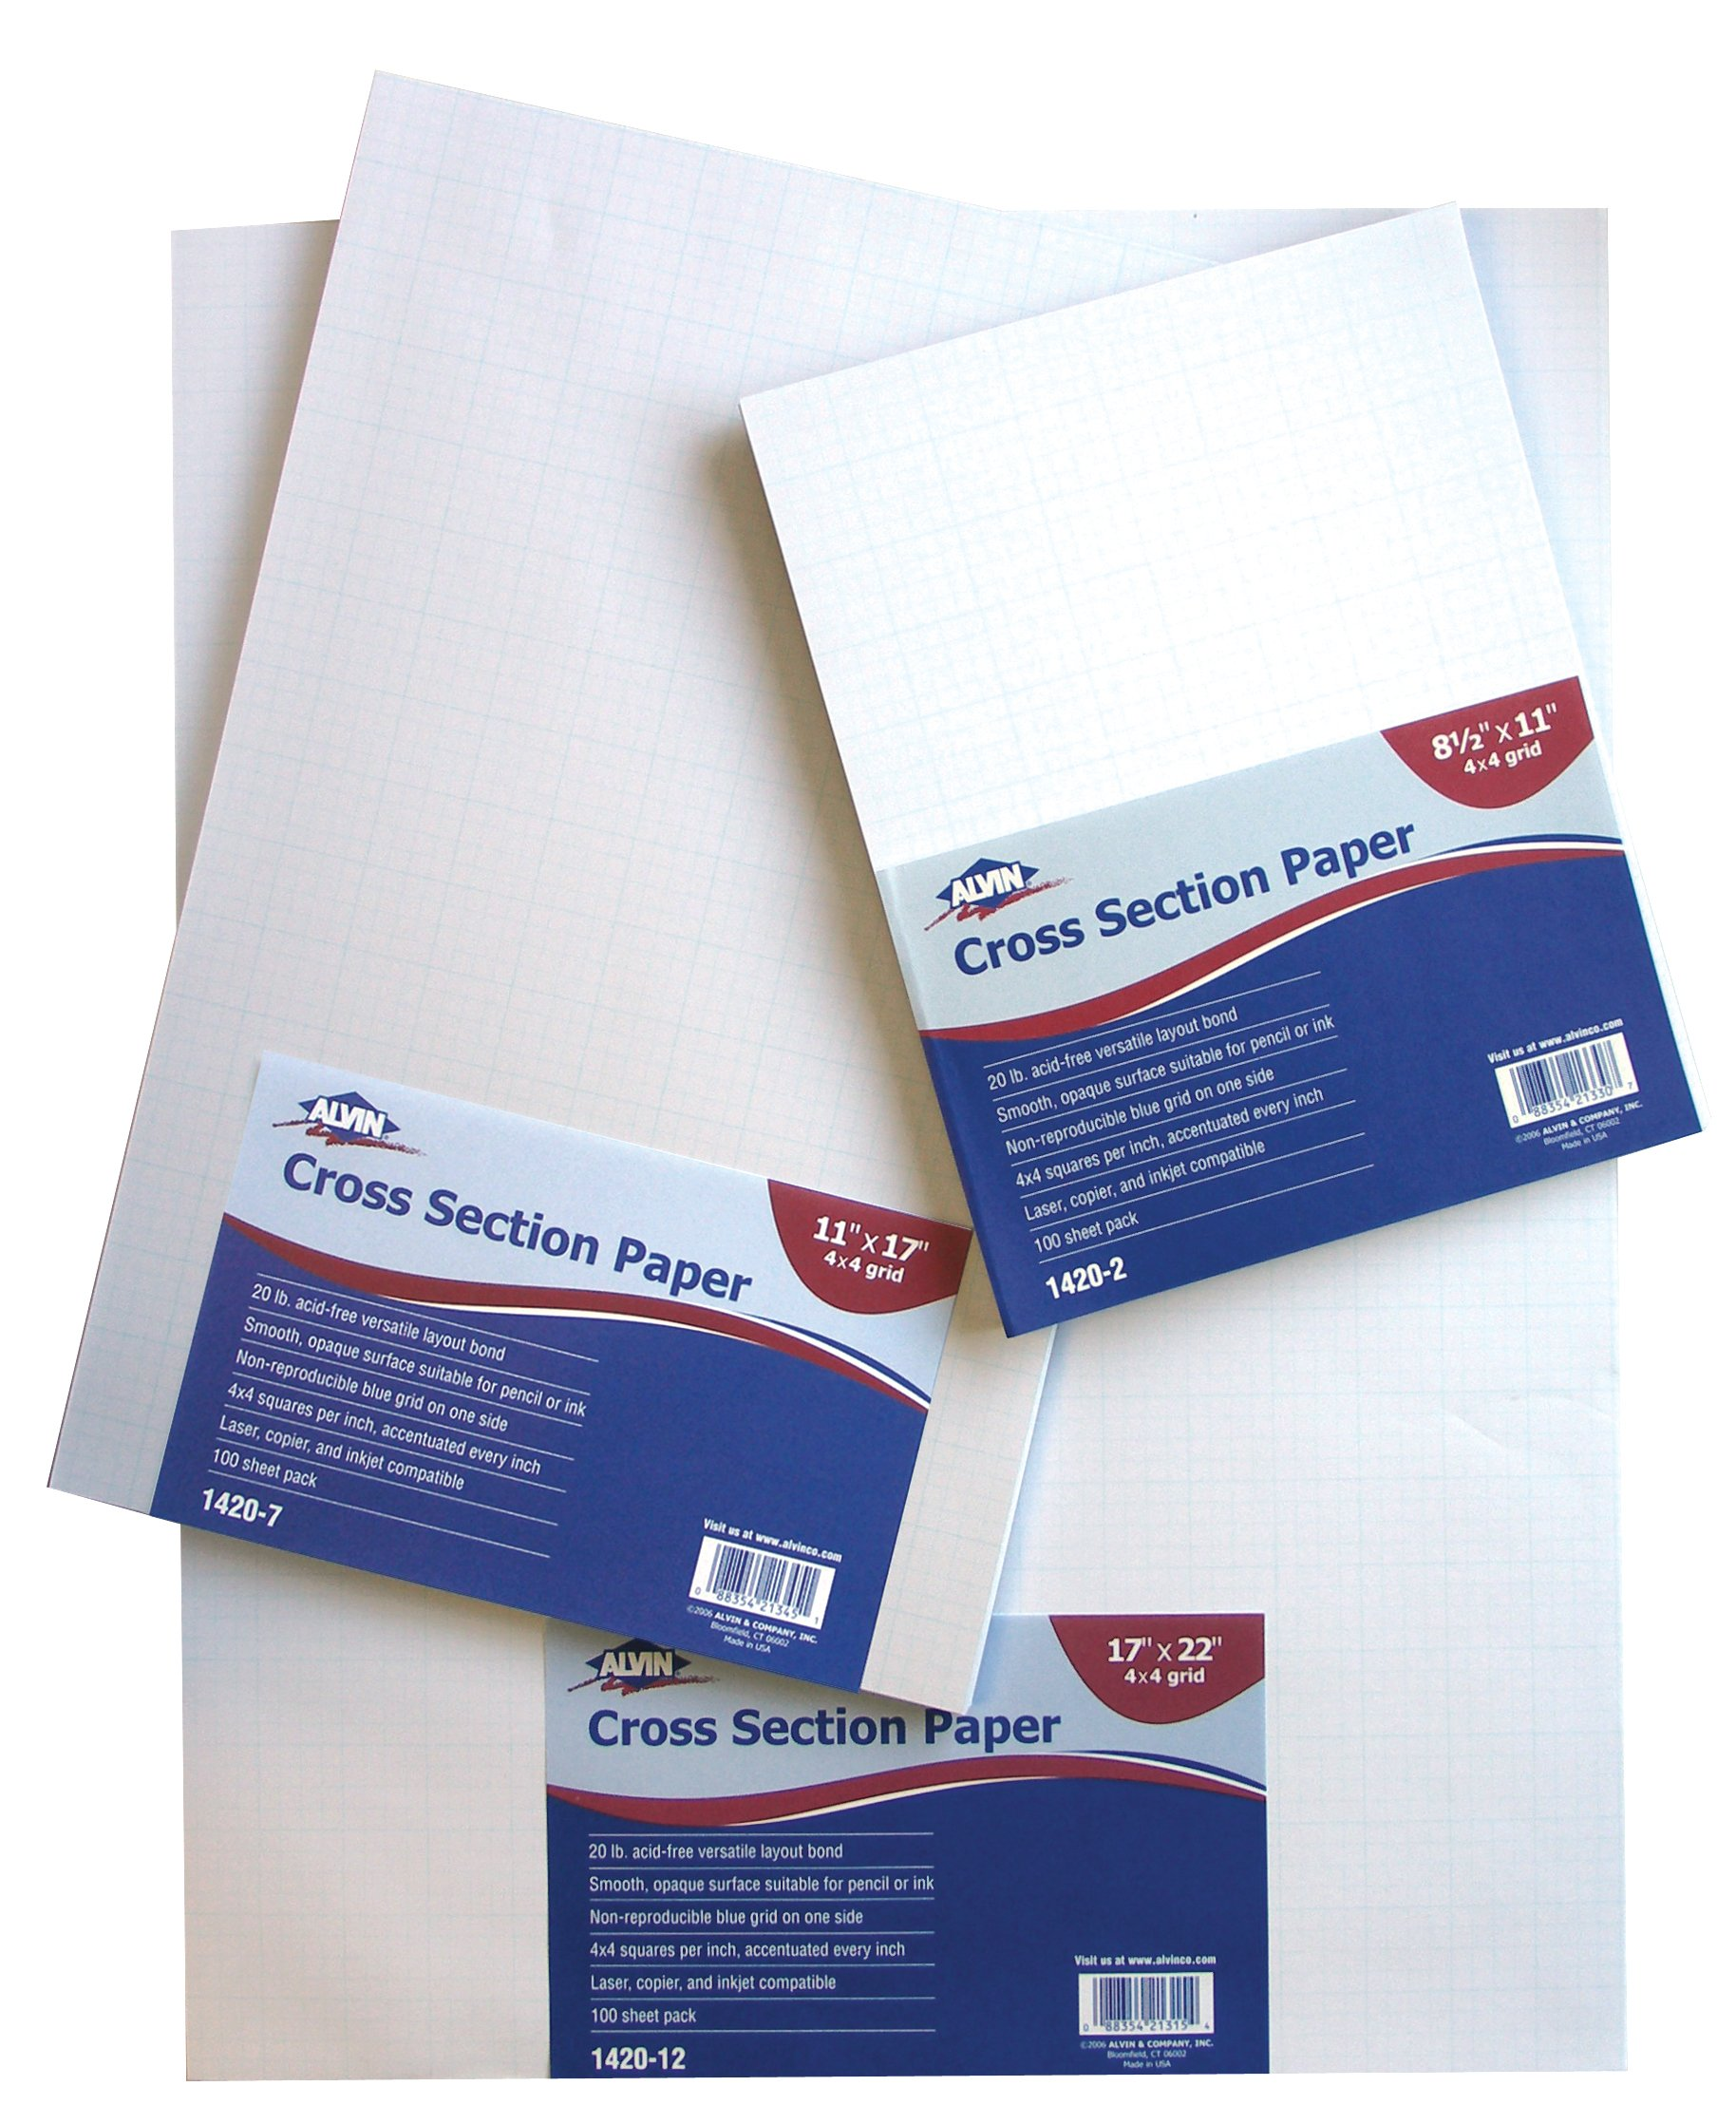 Alvin Cross Section Paper 4 x 4 Inches Grid 100-Sheet Pad (1420-12)